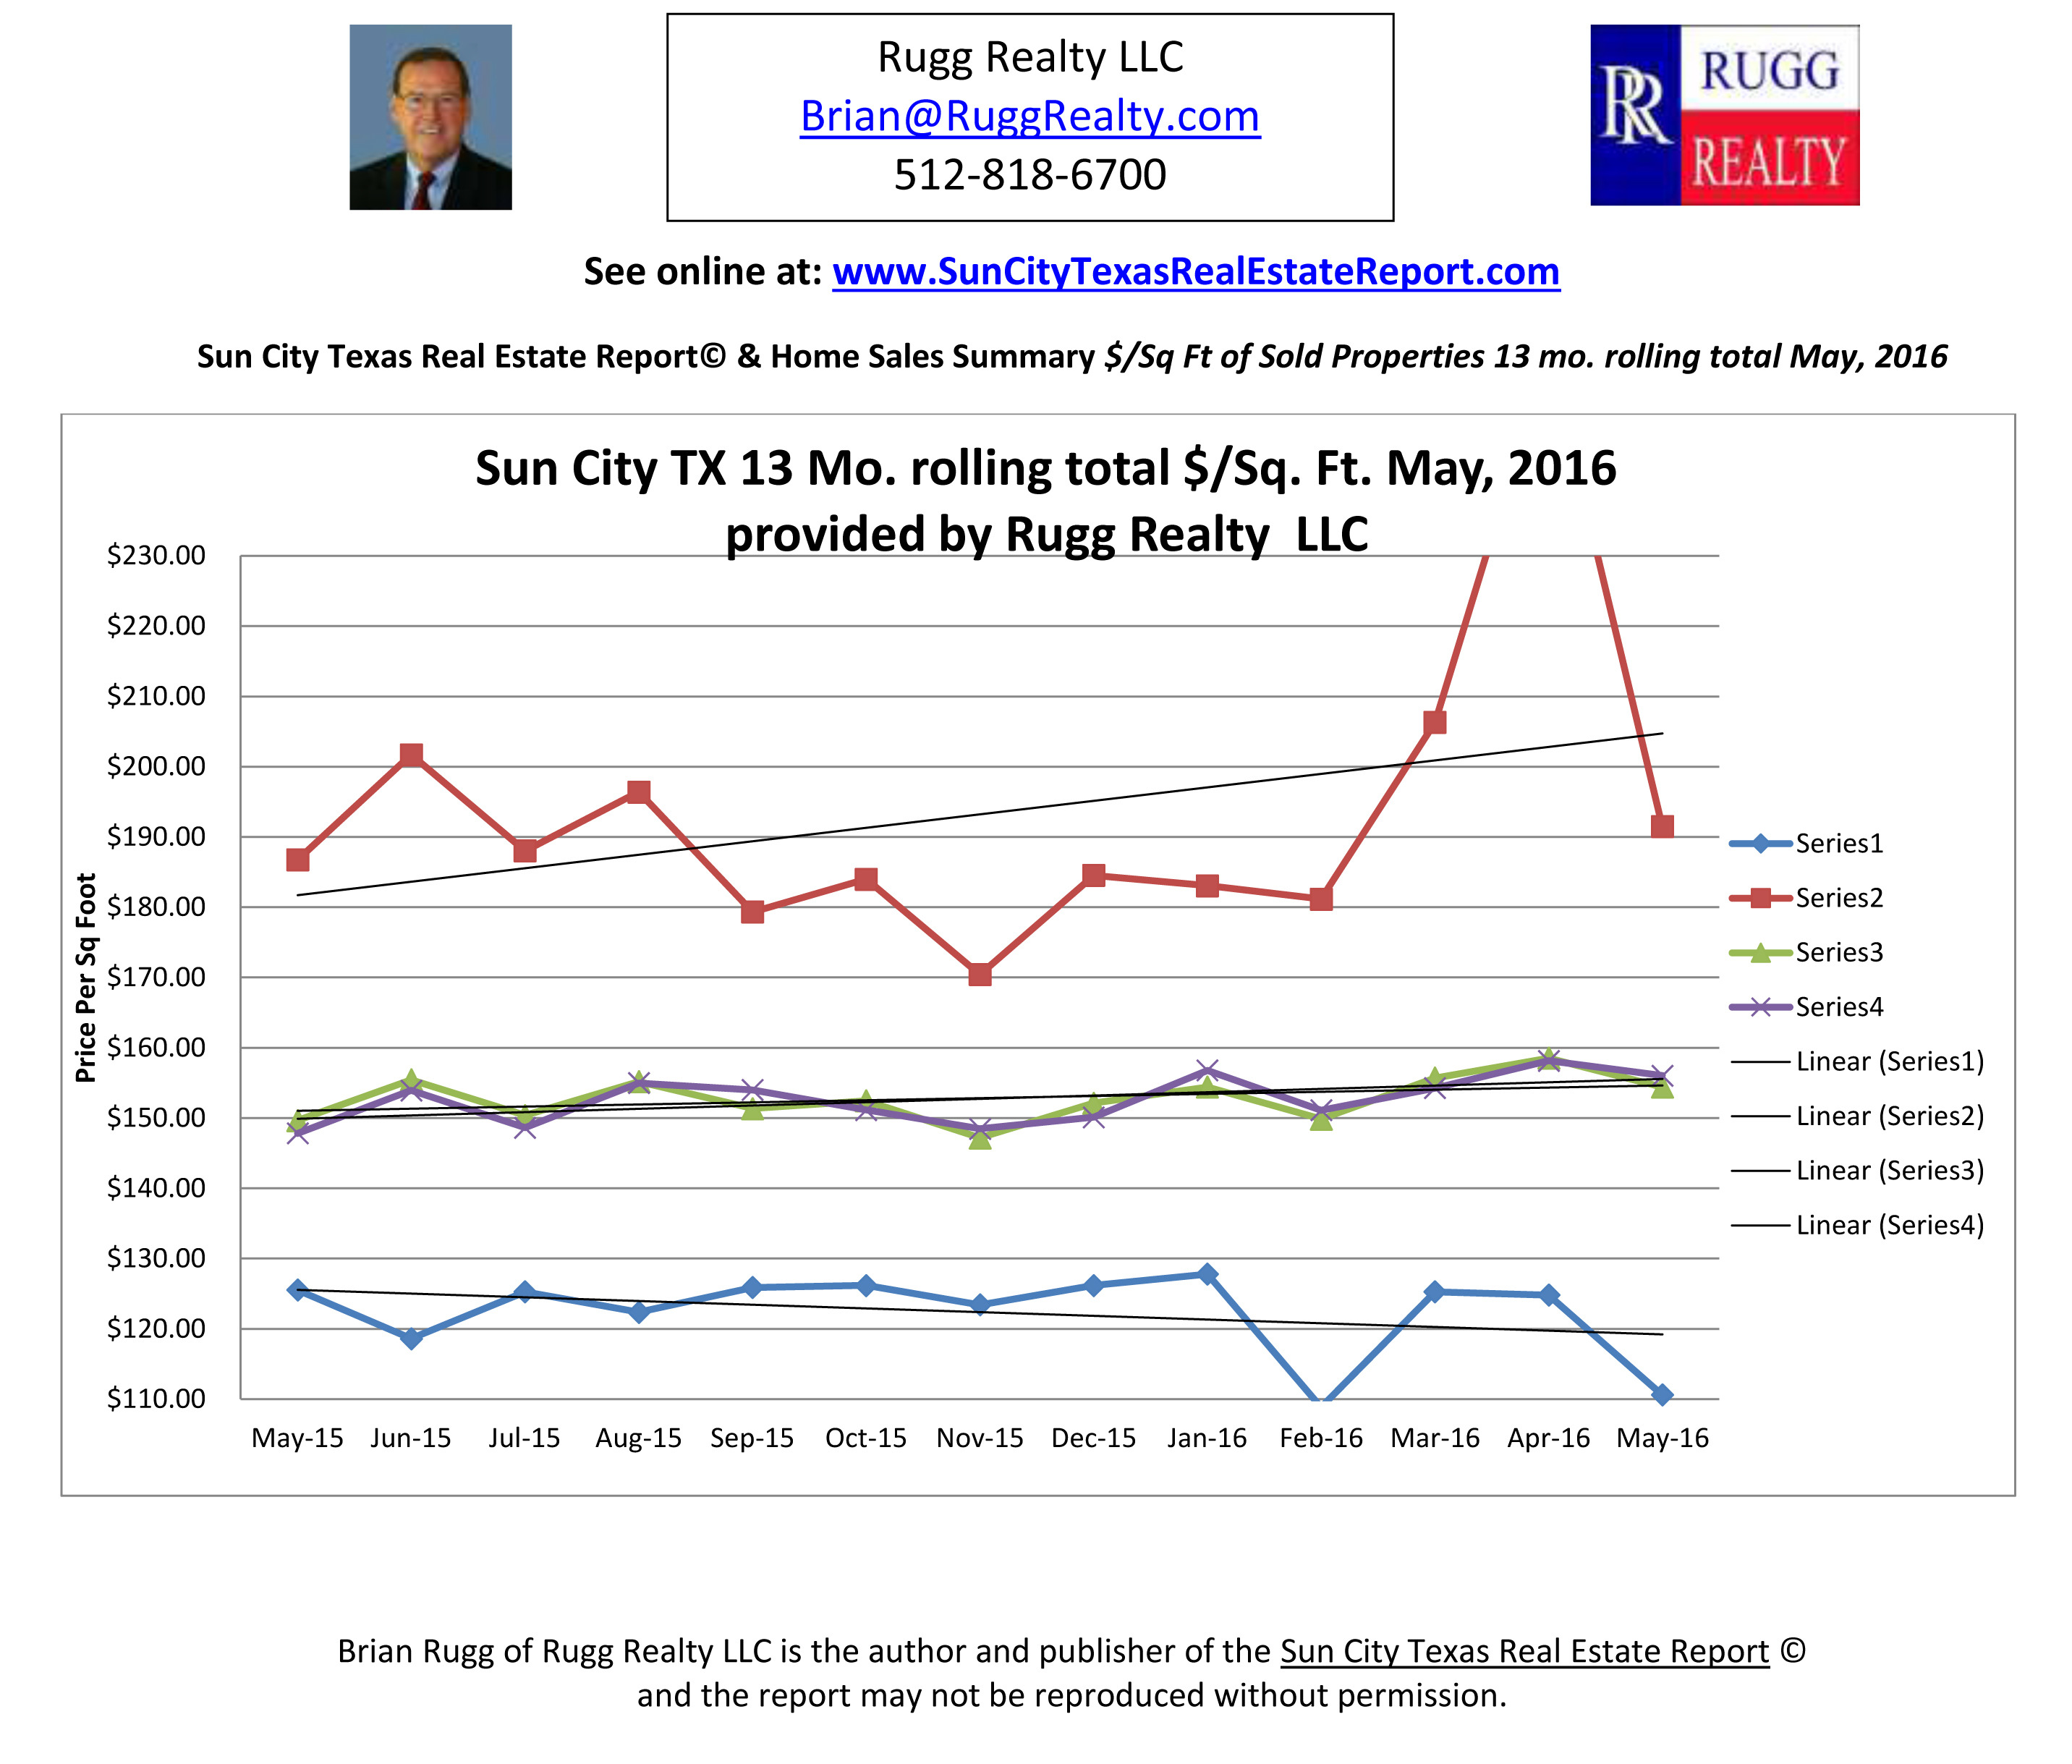 Sun City Texas Homes Cost/Sq. Ft. May 2016 Provided By Rugg Realty